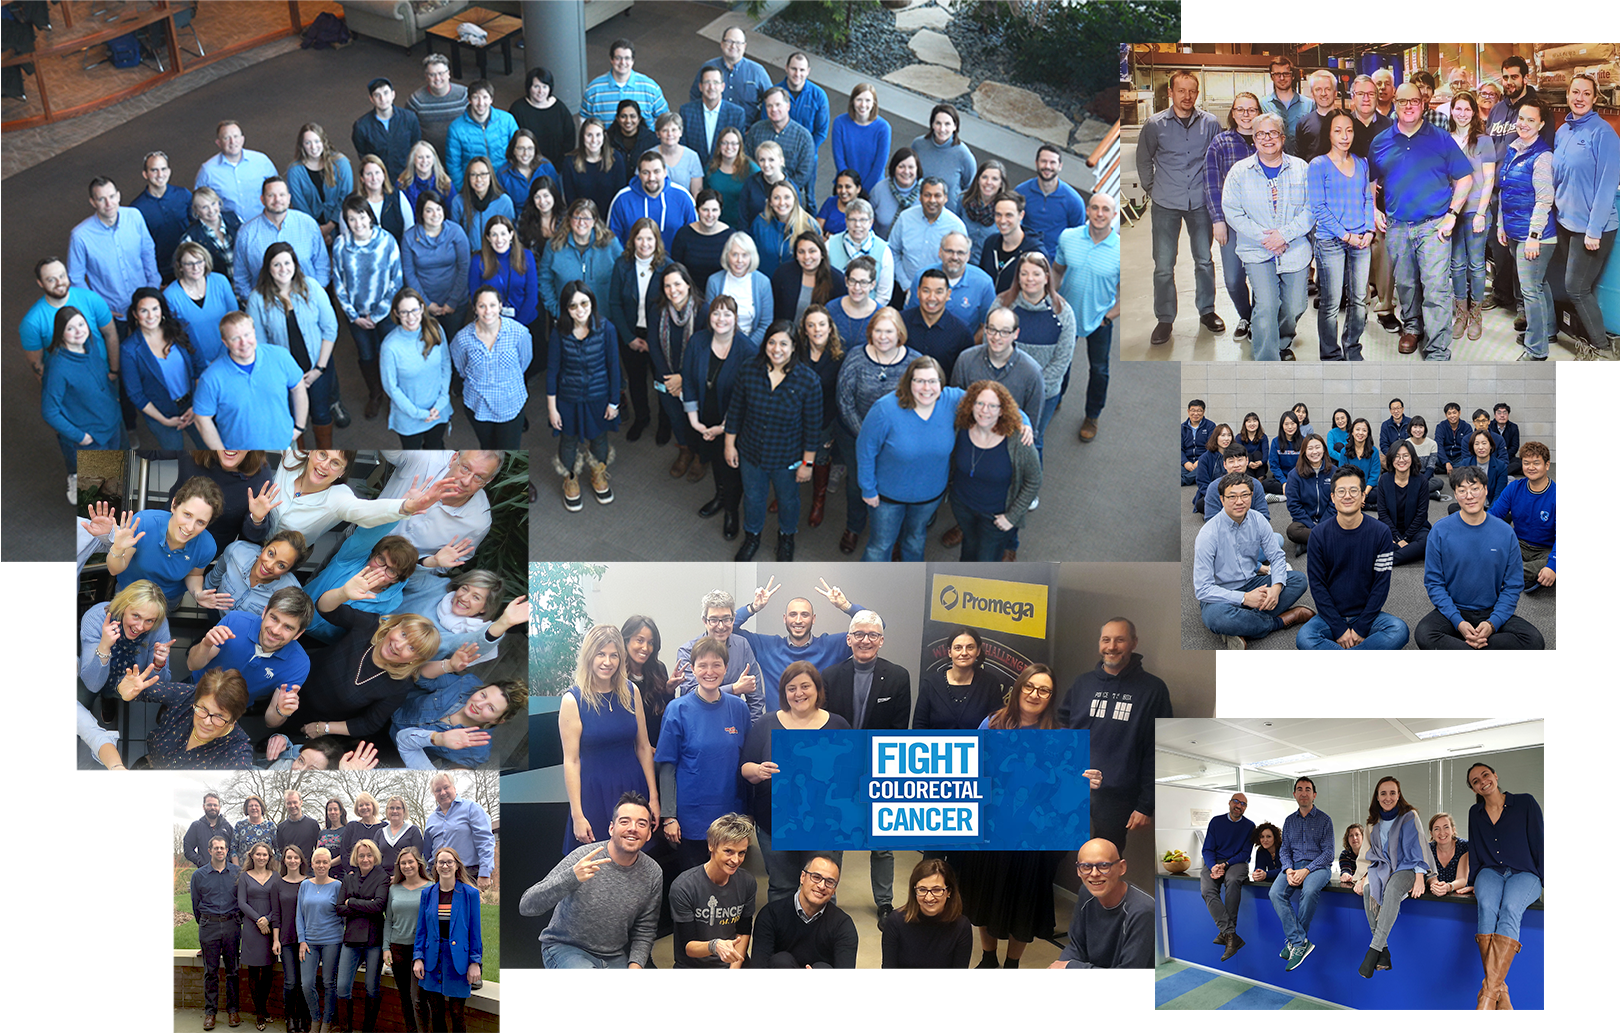 Promega employees wear blue and join the fight against colorectal cancer